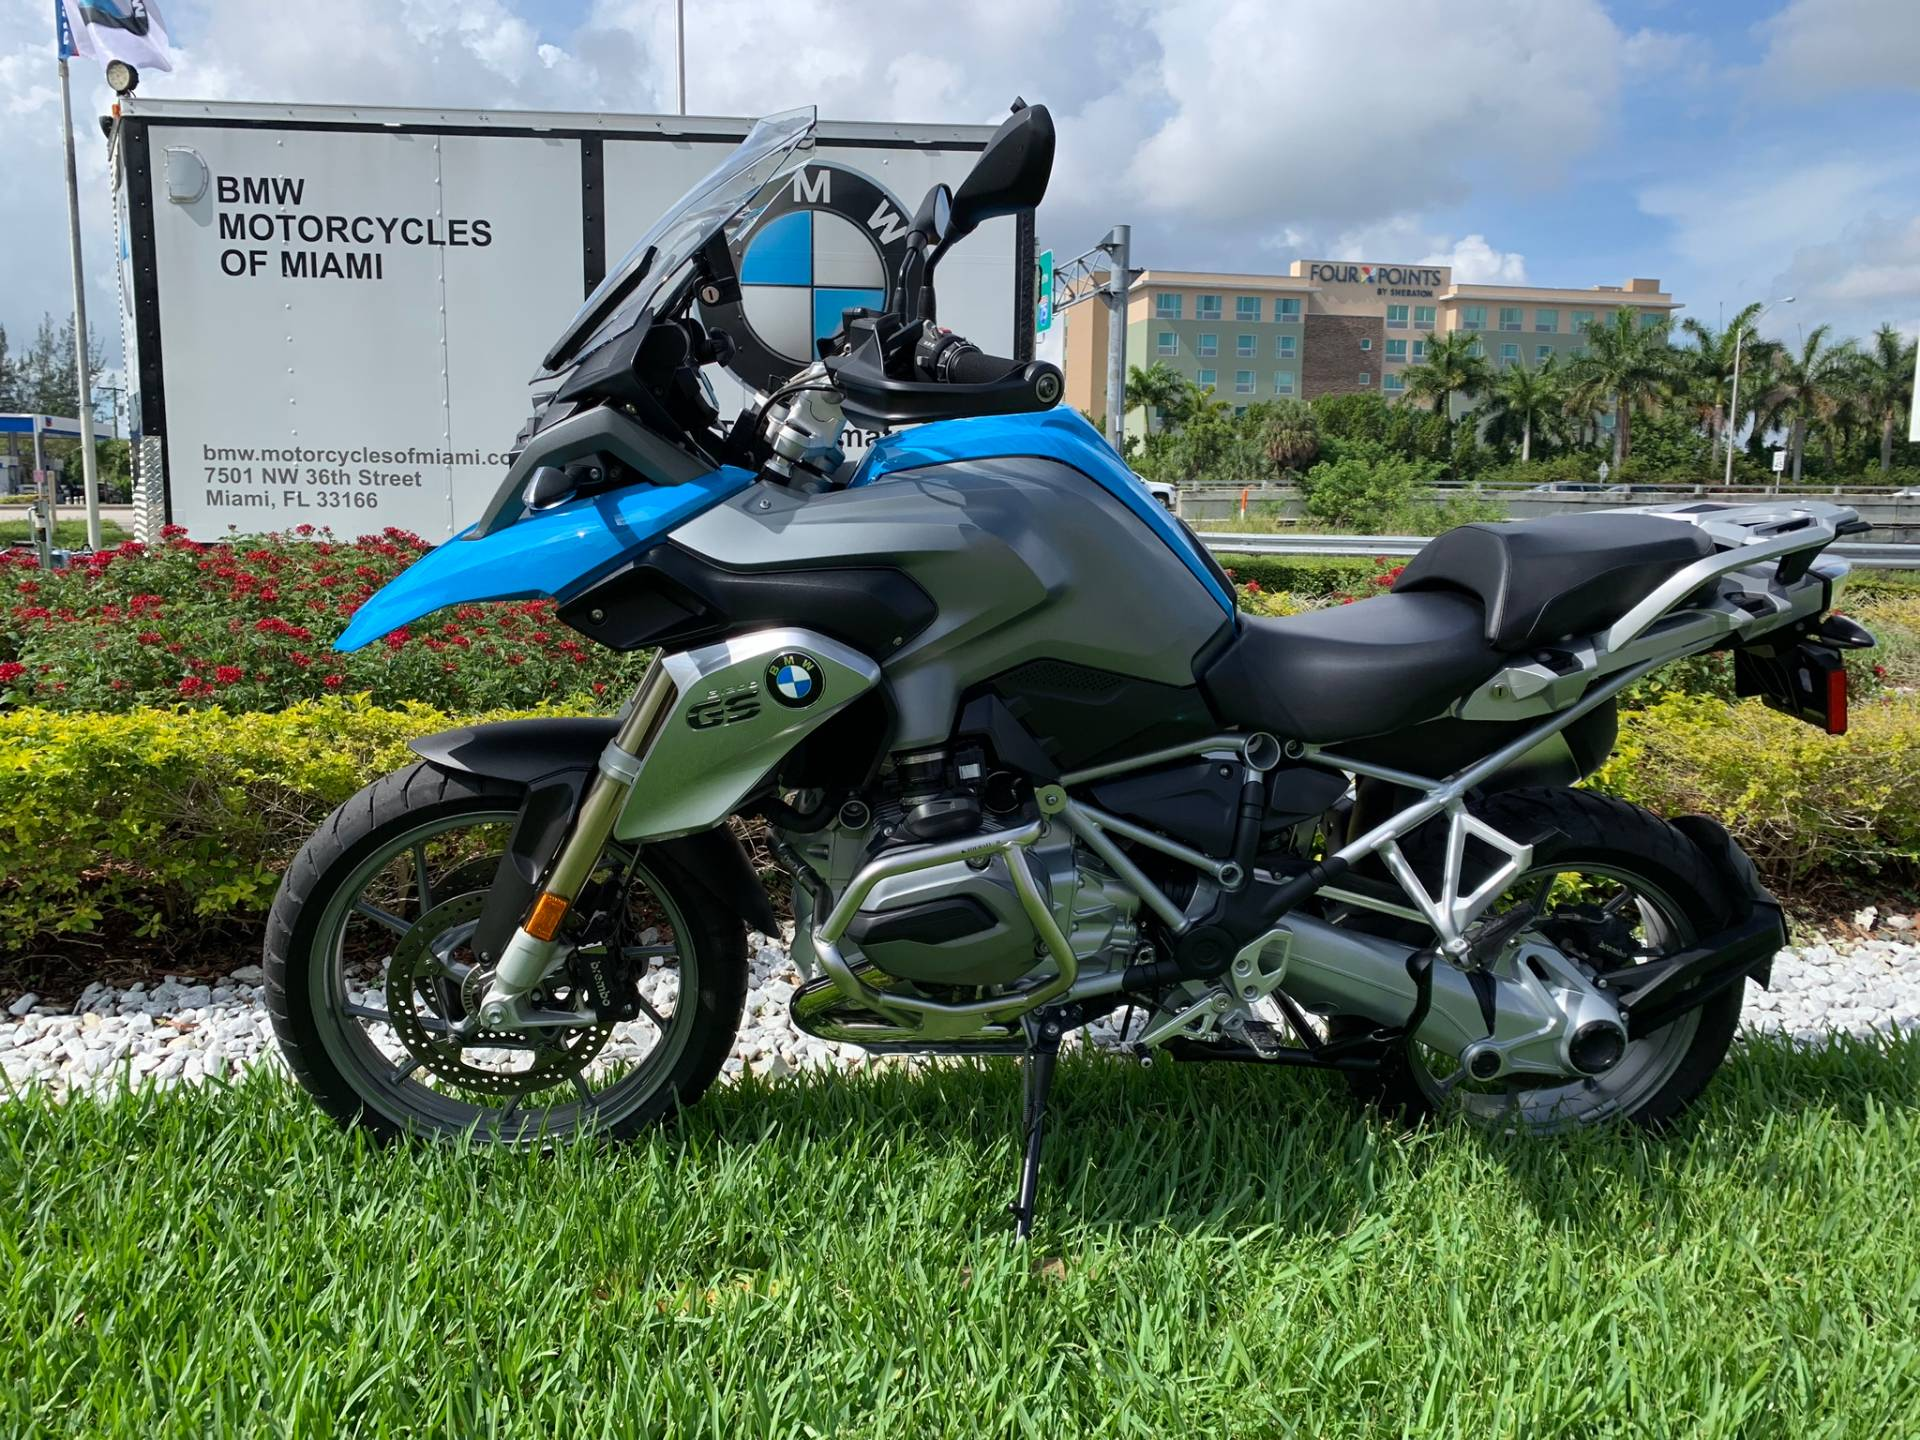 Used 2014 BMW R 1200 GS for sale, Pre-owned BMW R1200GS for sale, BMW Motorcycle Adventure, used BMW GS Fire Blue, BMW Motorcycles of Miami, Motorcycles of Miami, Motorcycles Miami, New Motorcycles, Used Motorcycles, pre-owned. #BMWMotorcyclesOfMiami #MotorcyclesOfMiami - Photo 8